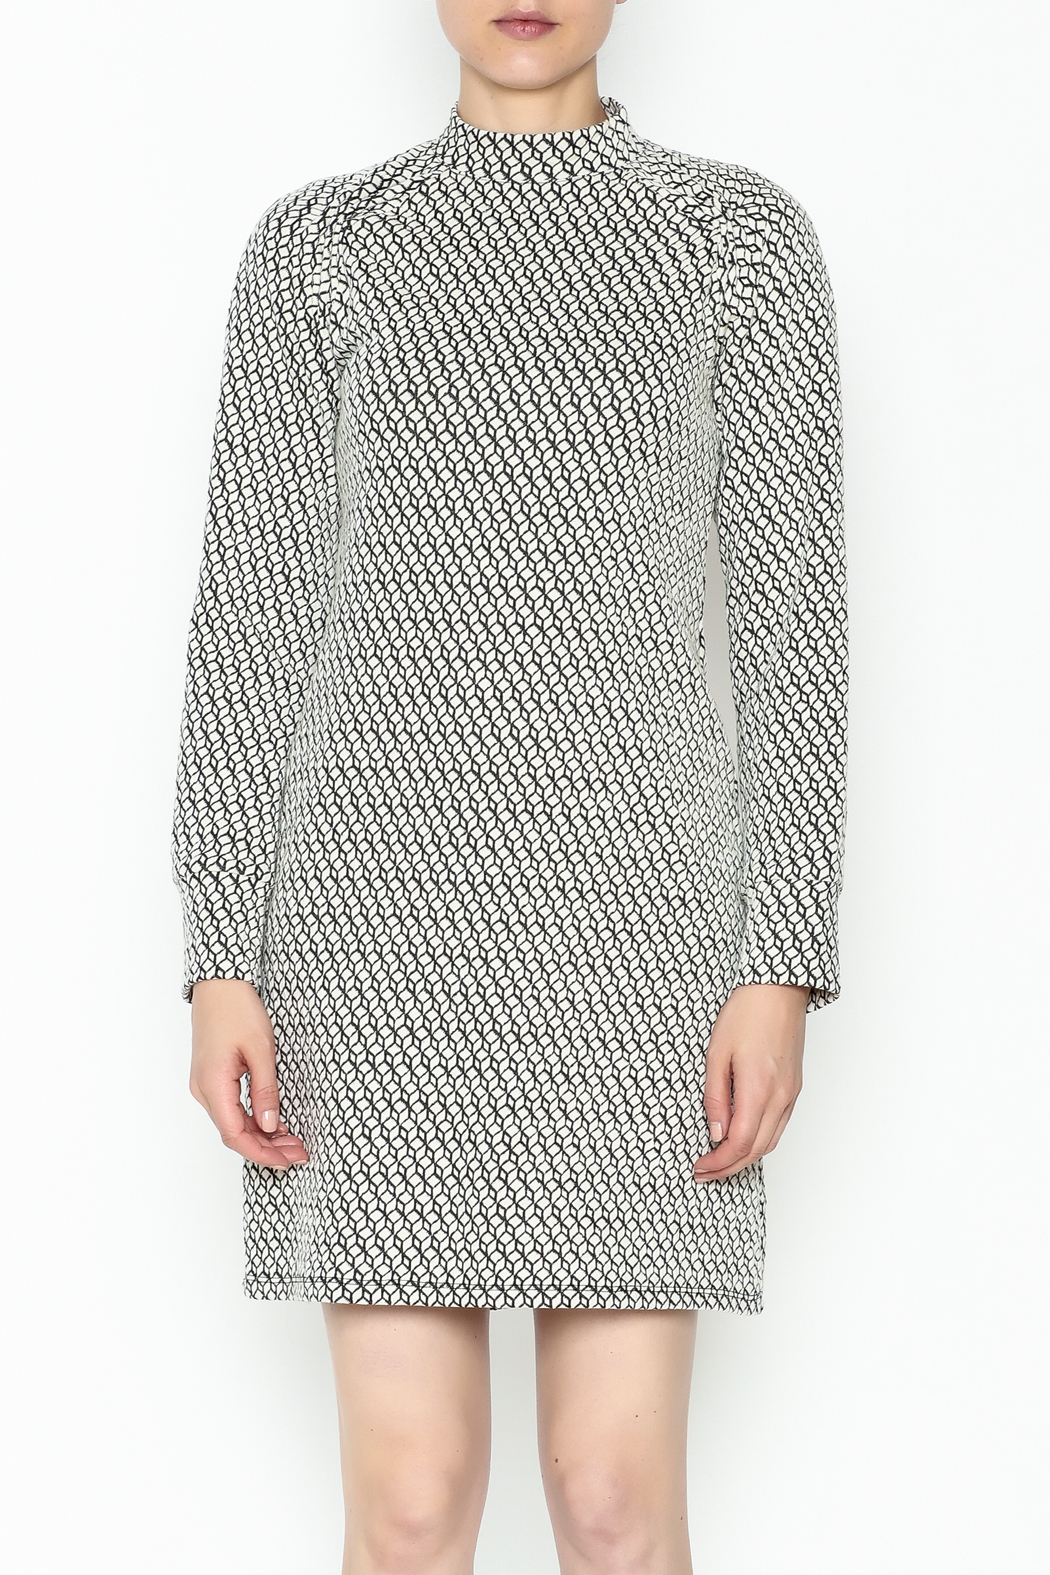 House of Wallace Josephine Dress - Front Full Image